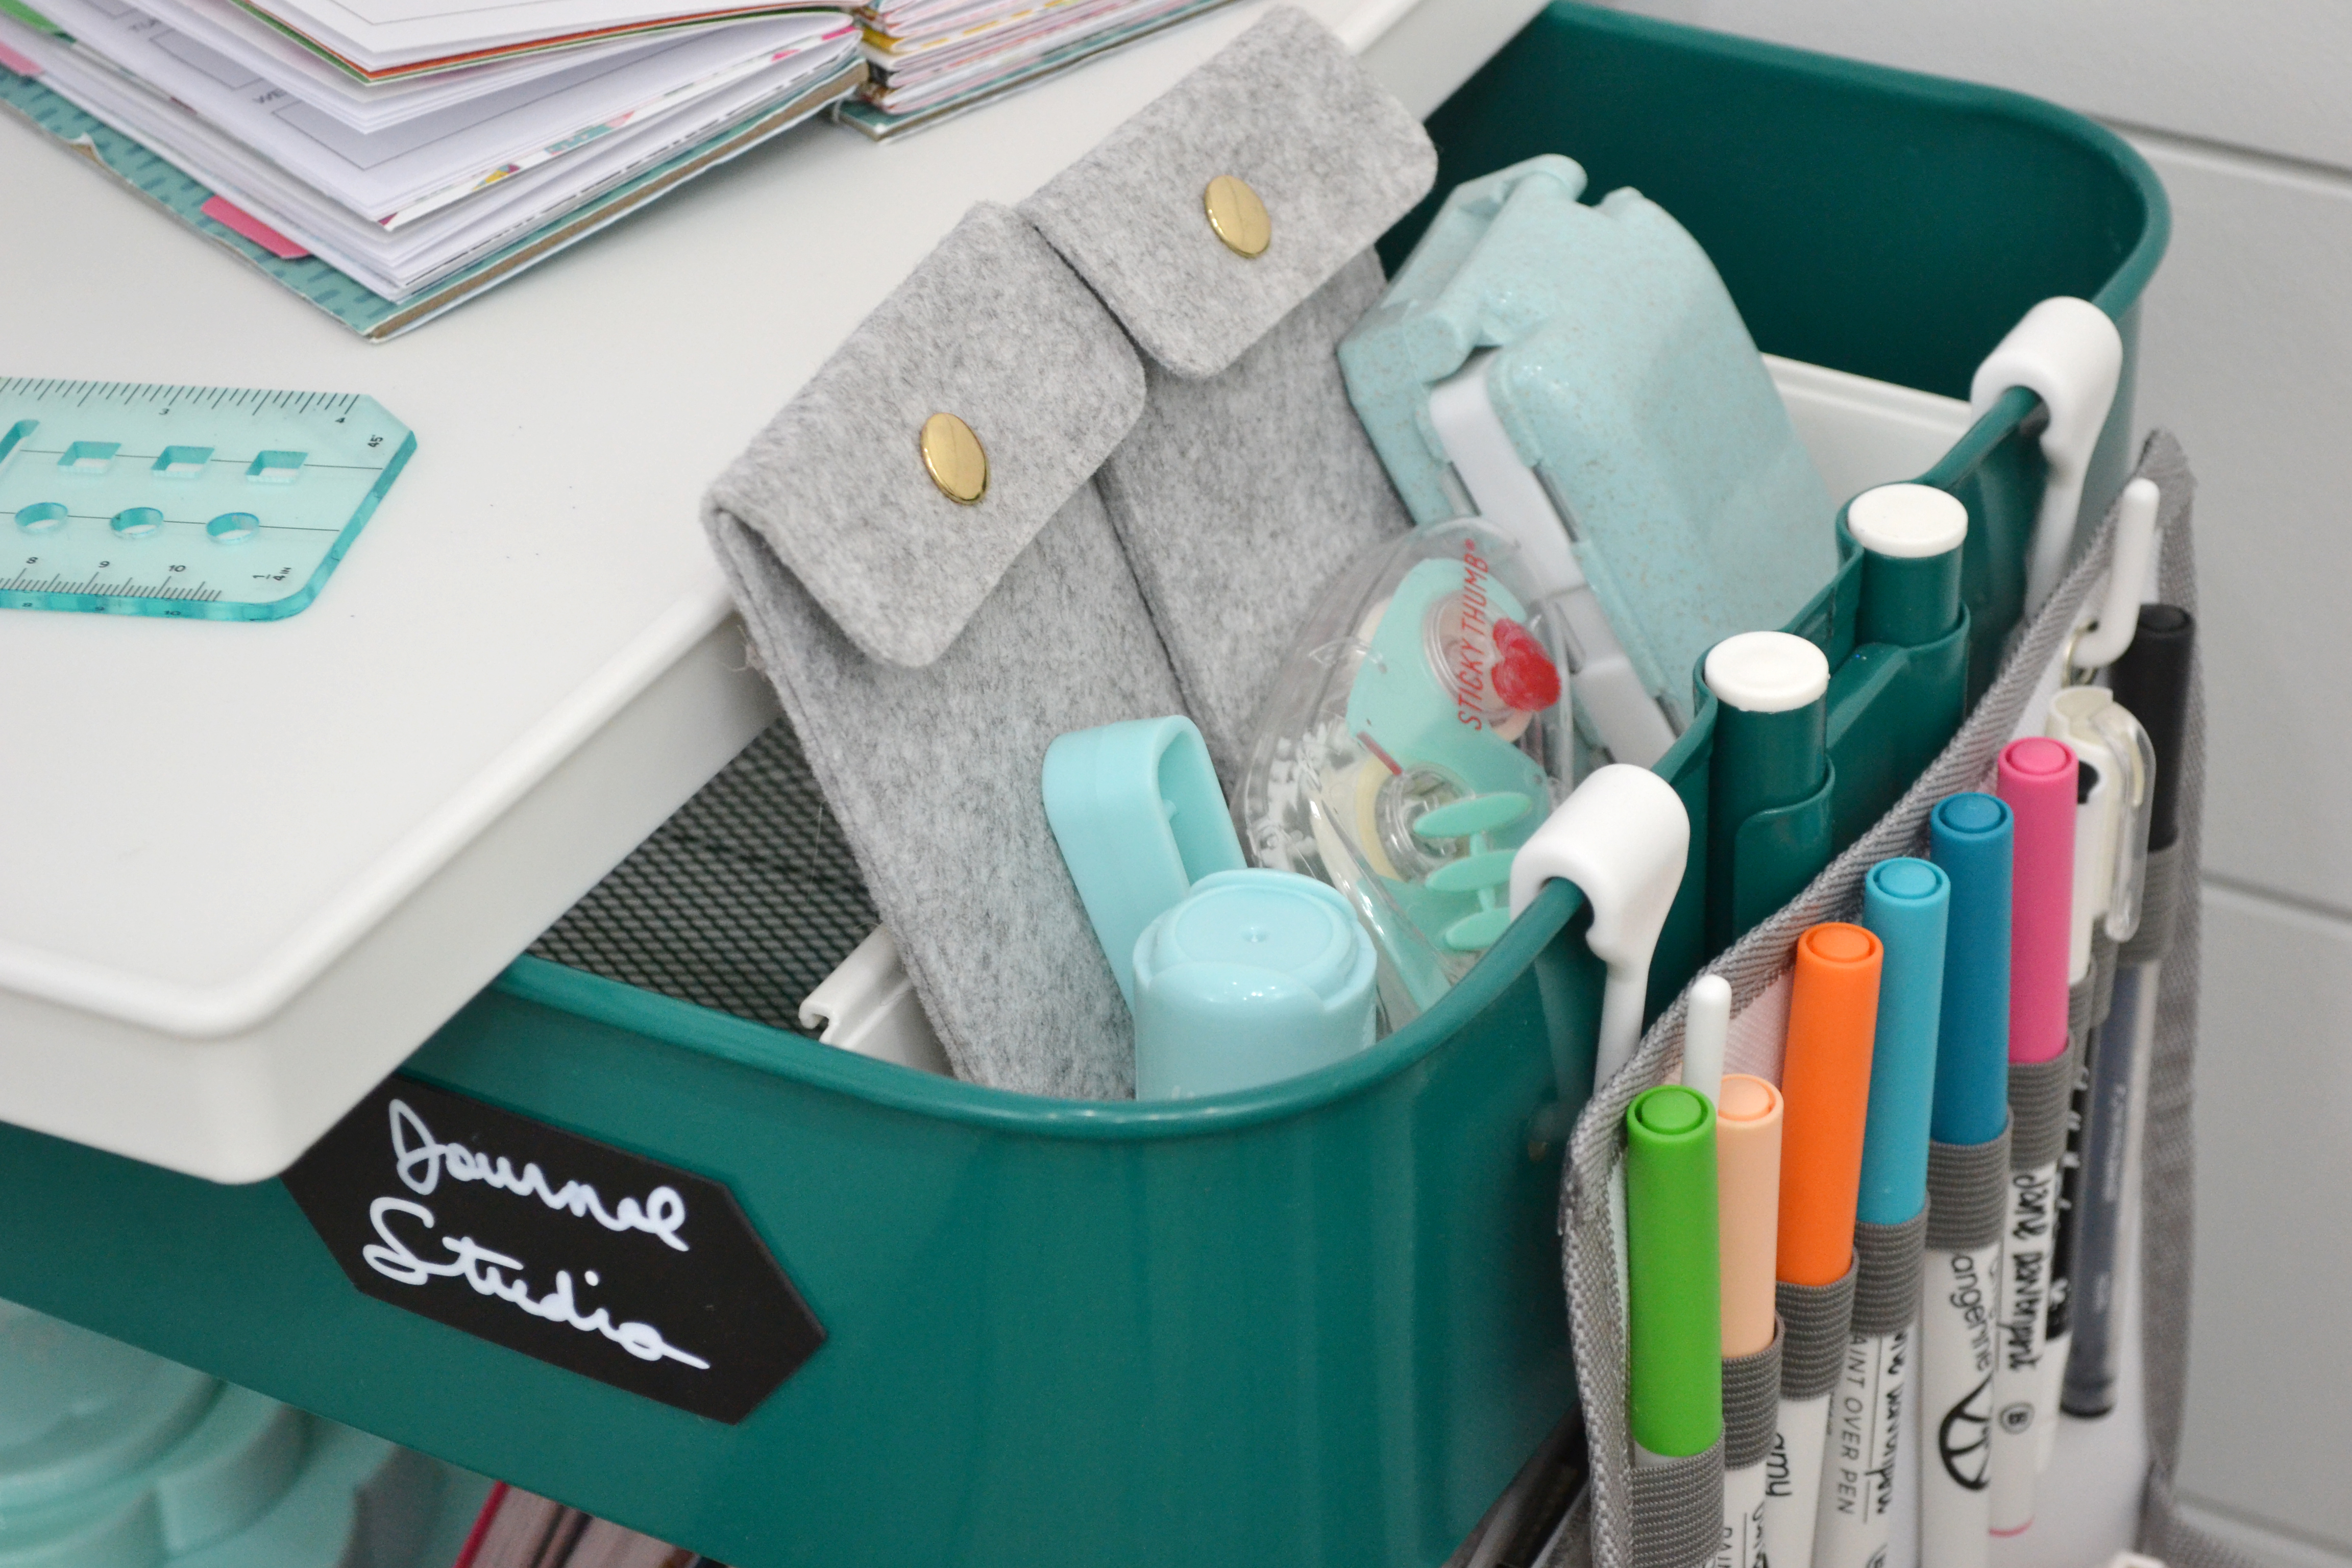 The Cart Pocket from the A La Cart collection allows me to fit so much more on the cart. It fits on the side easily with the included removable hooks. I use it to hold my markers, cutting tools, and some Journal Studio supplies.